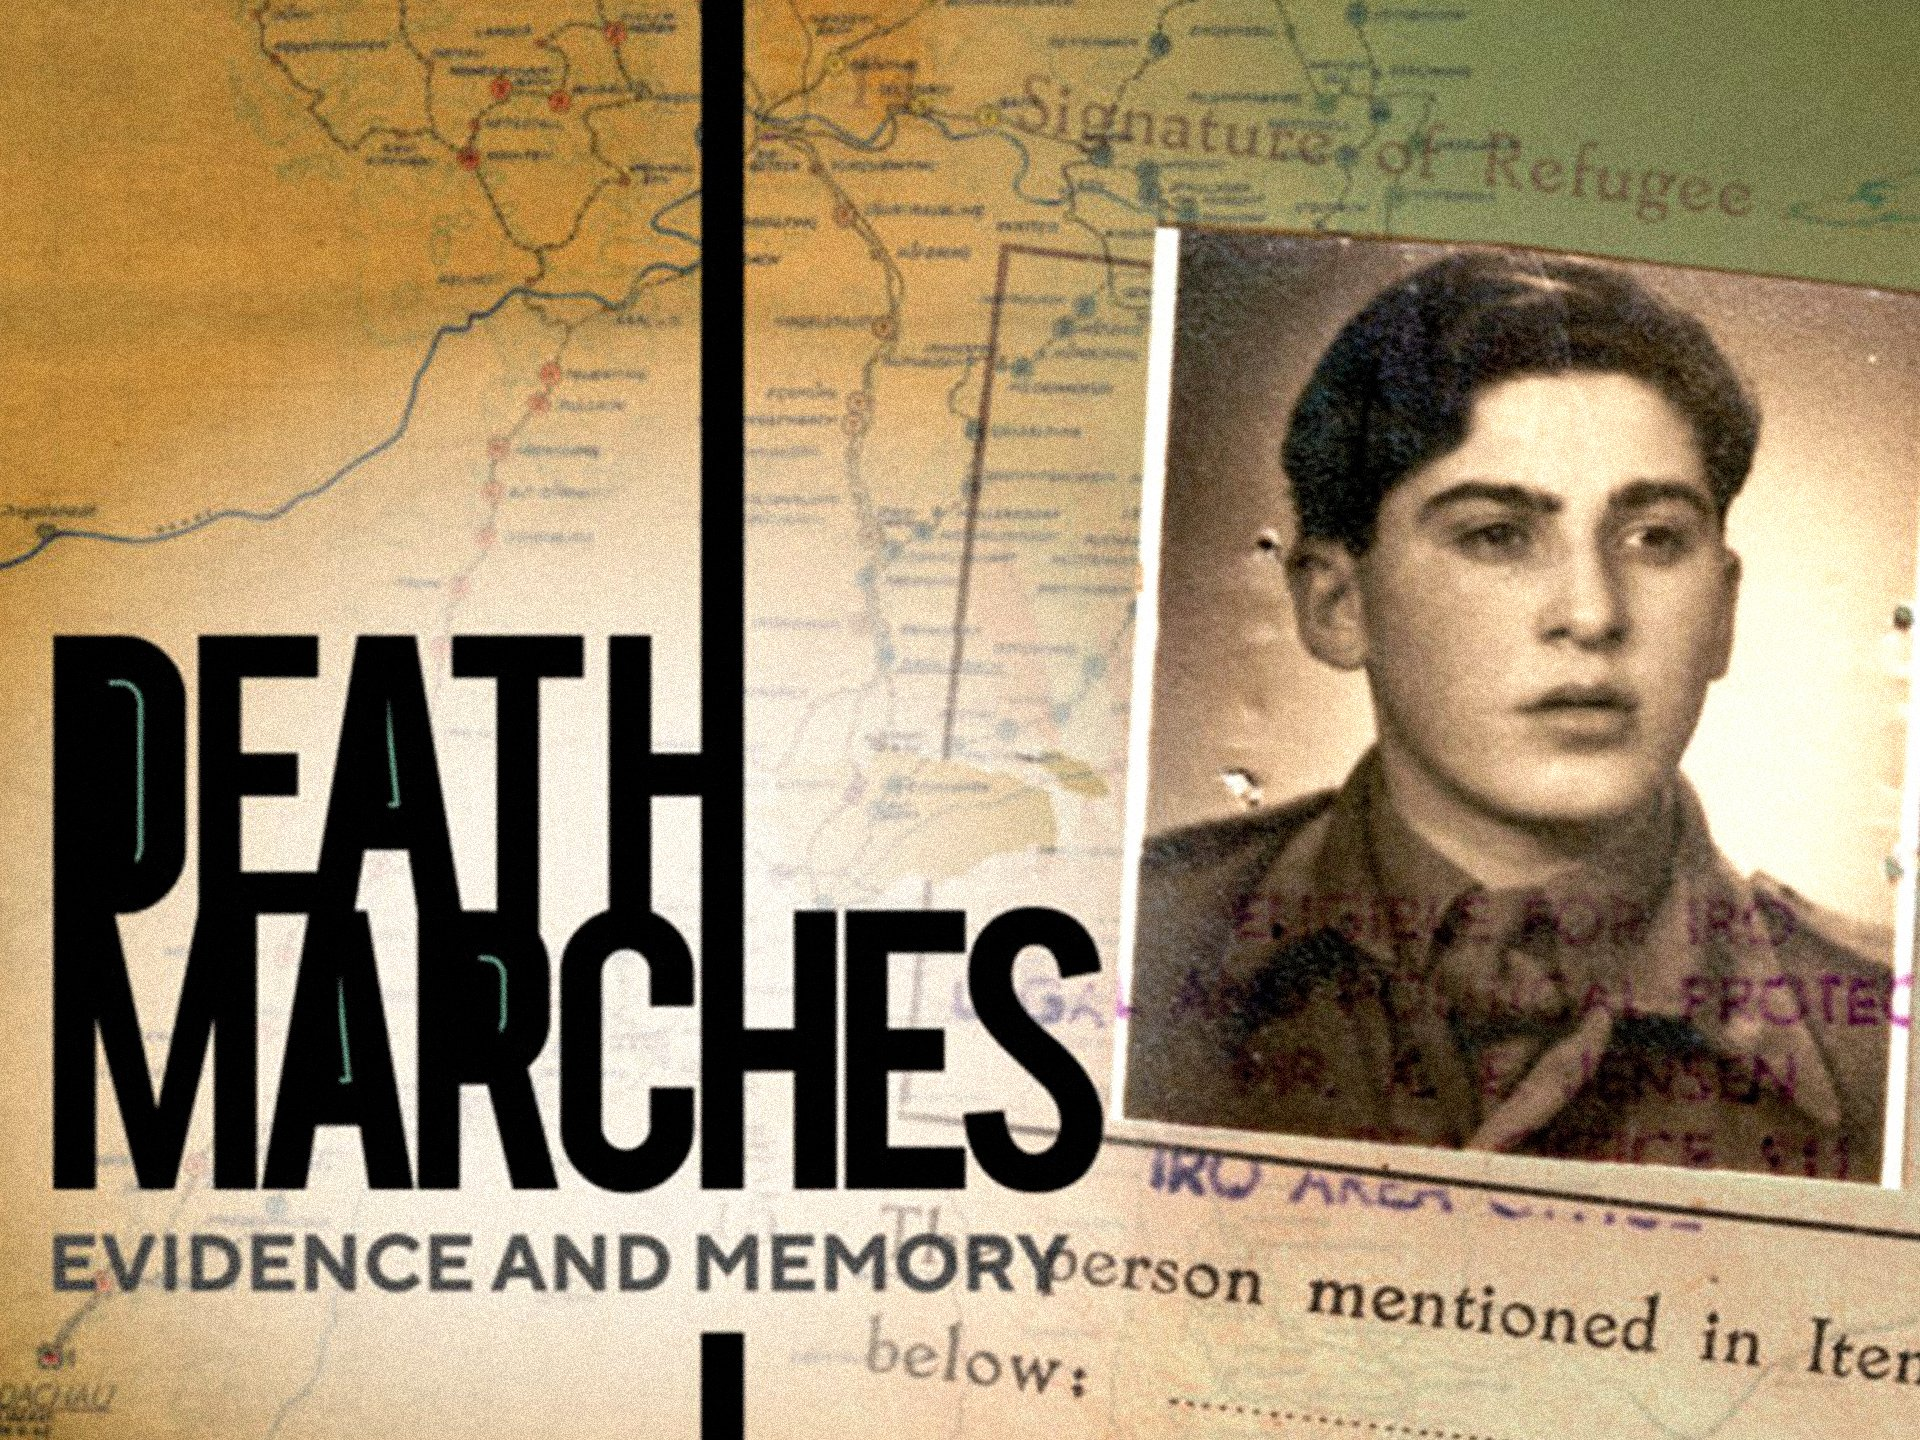 The title 'Death Marches: Evidence and Memory' accompanied by a photograph of survivor Eugene Black, with a map of a death march in the background.